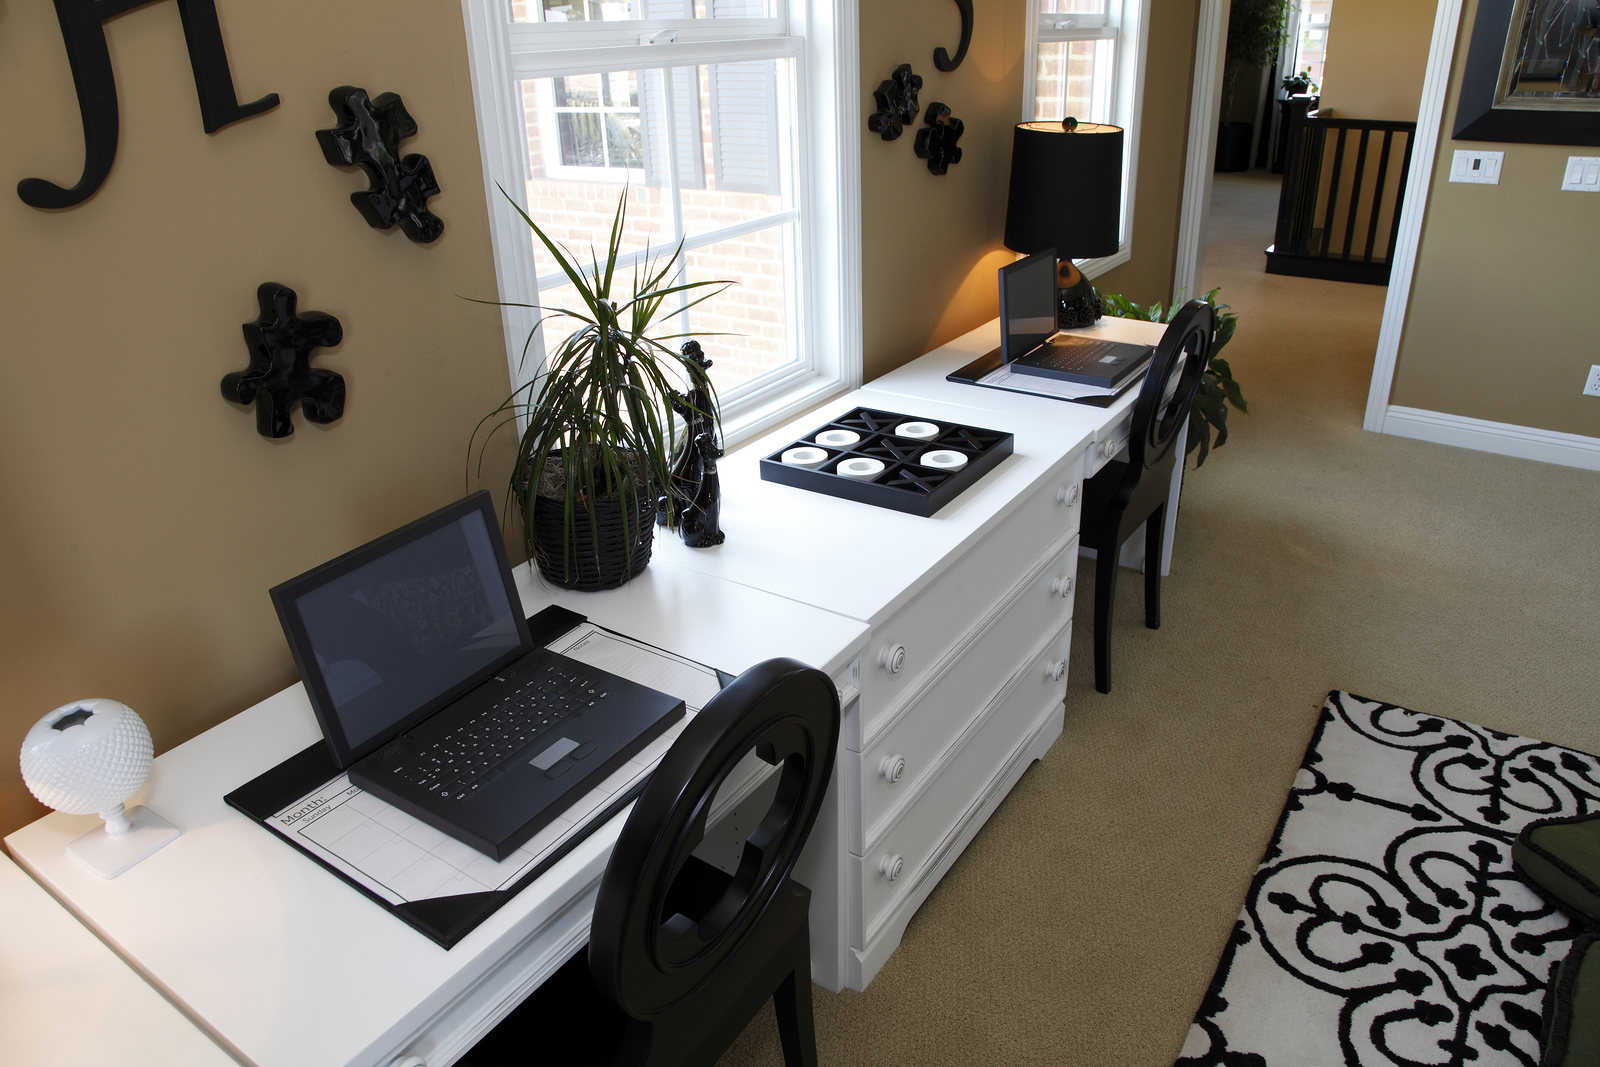 Luxury home office desk with two computers